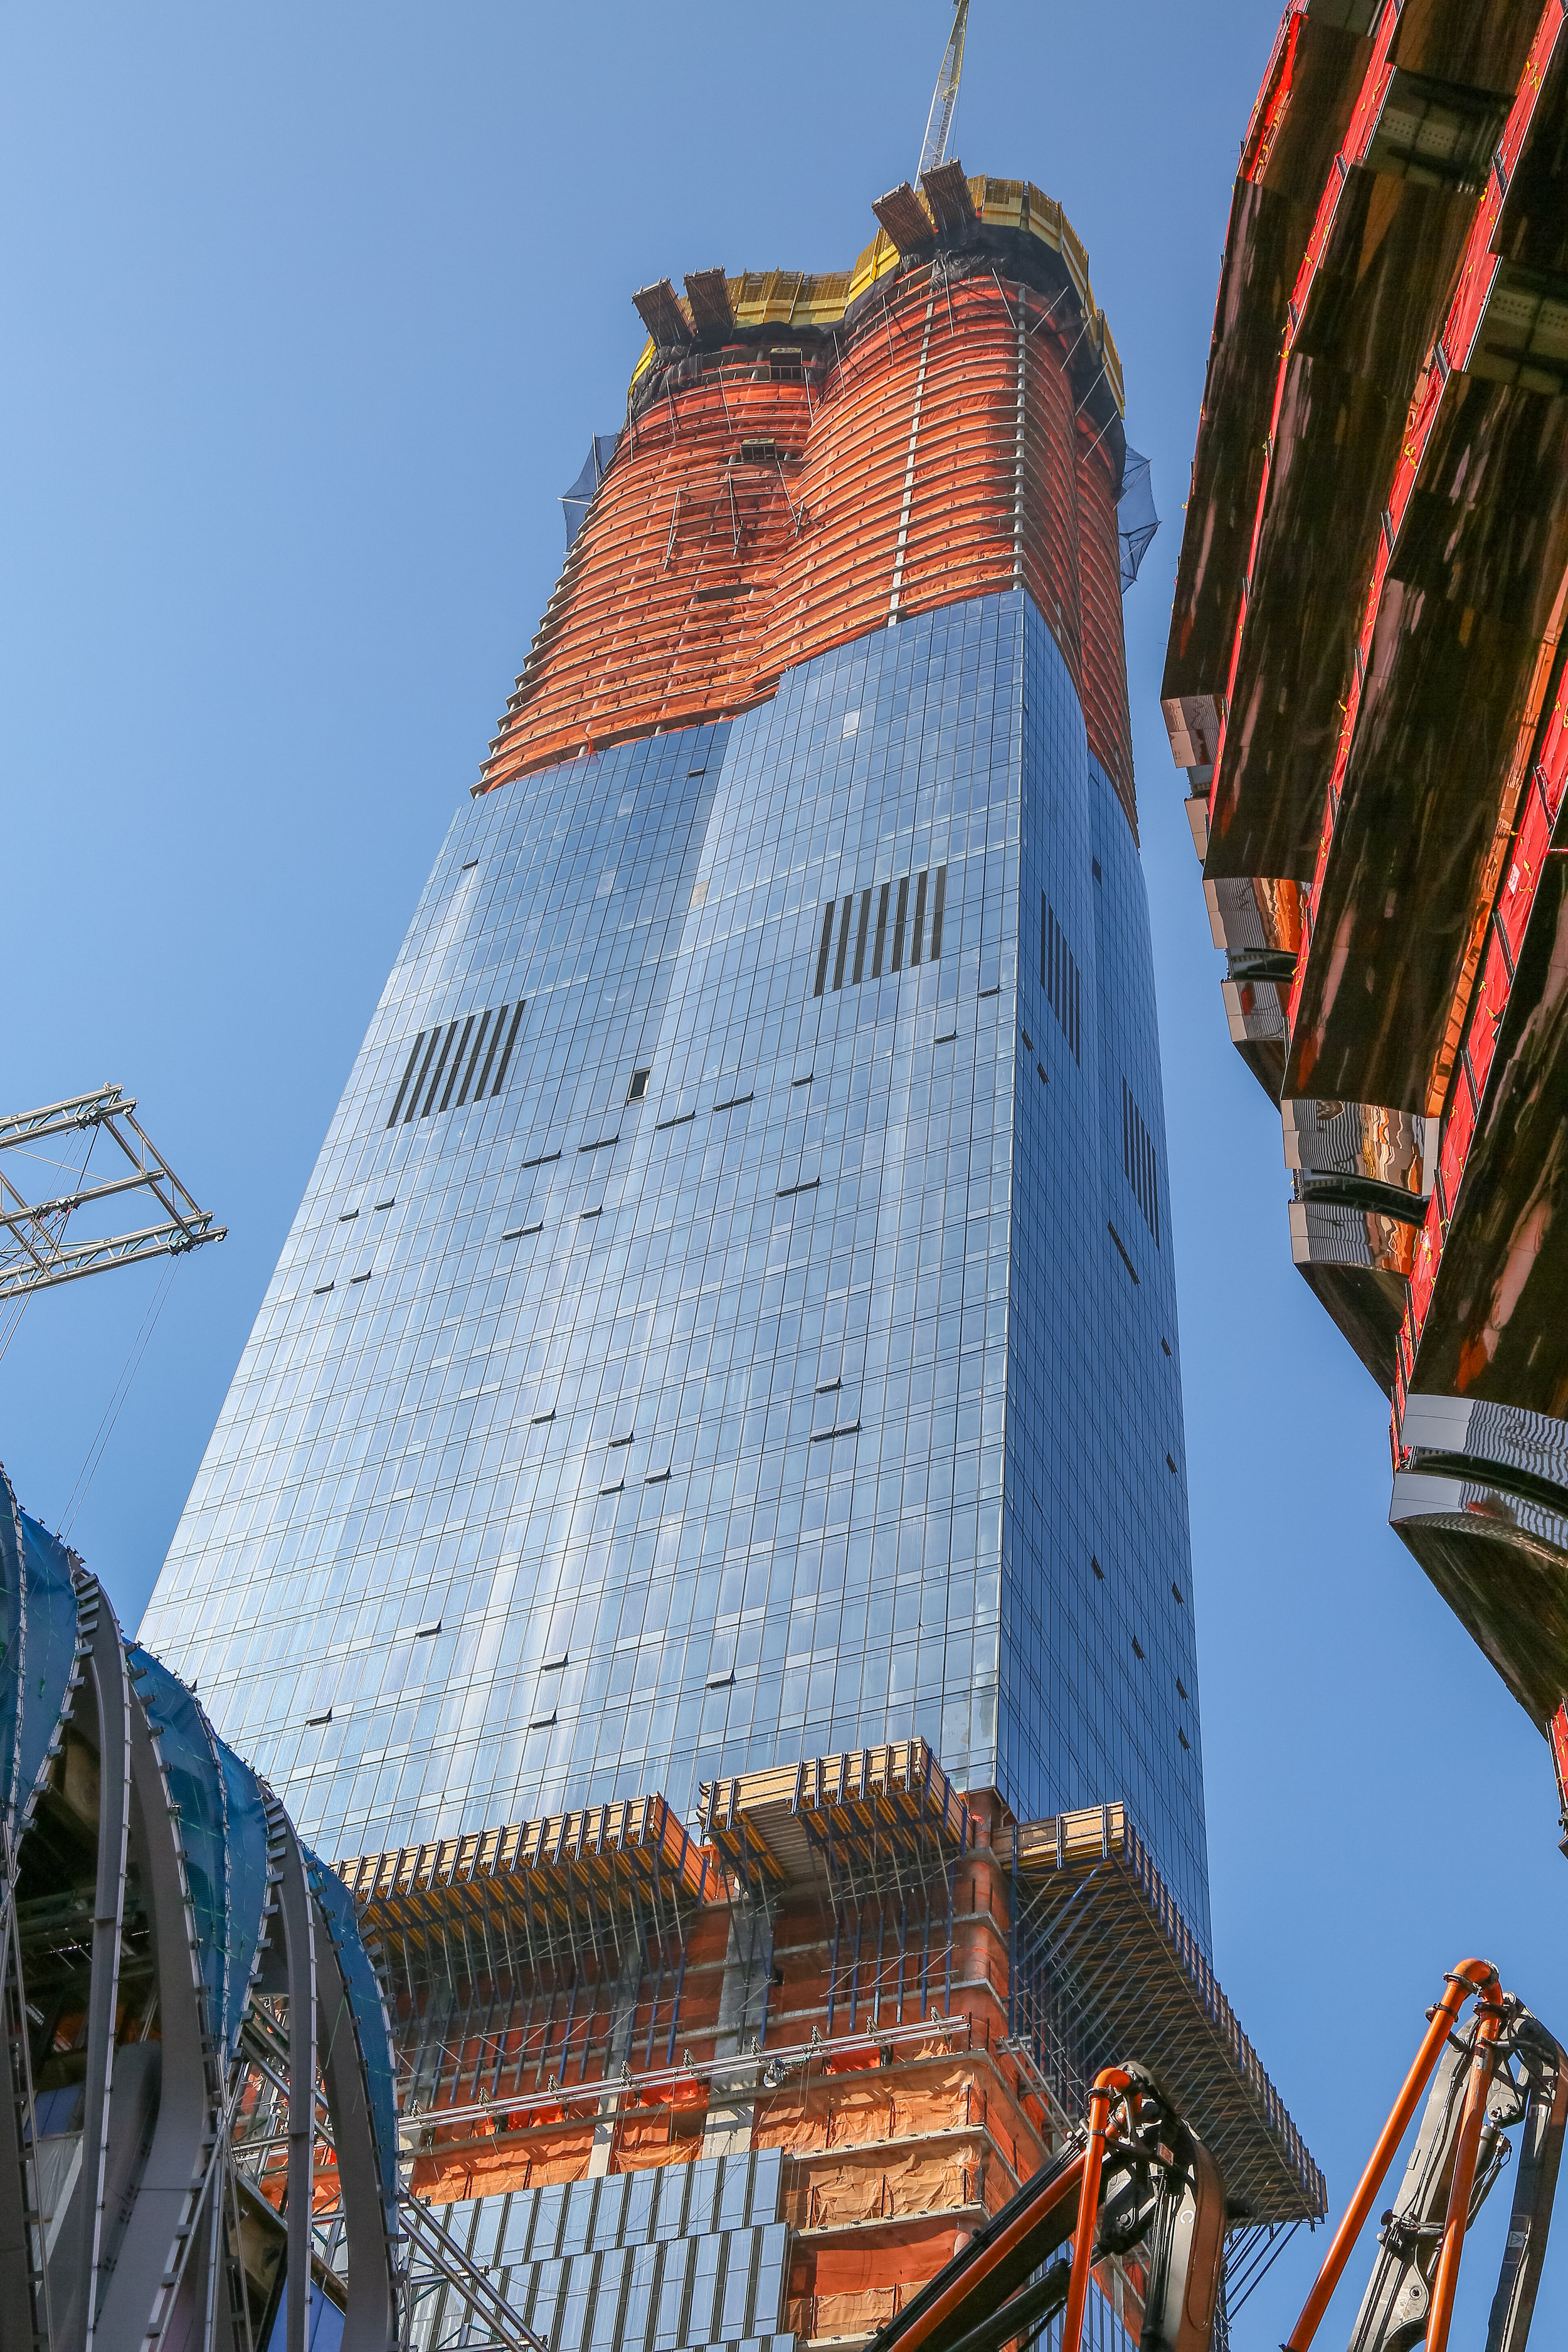 15 Hudson Yards Tops Out, Designed By Diller Scofidio + Renfro in Collaboration With Rockwell Group